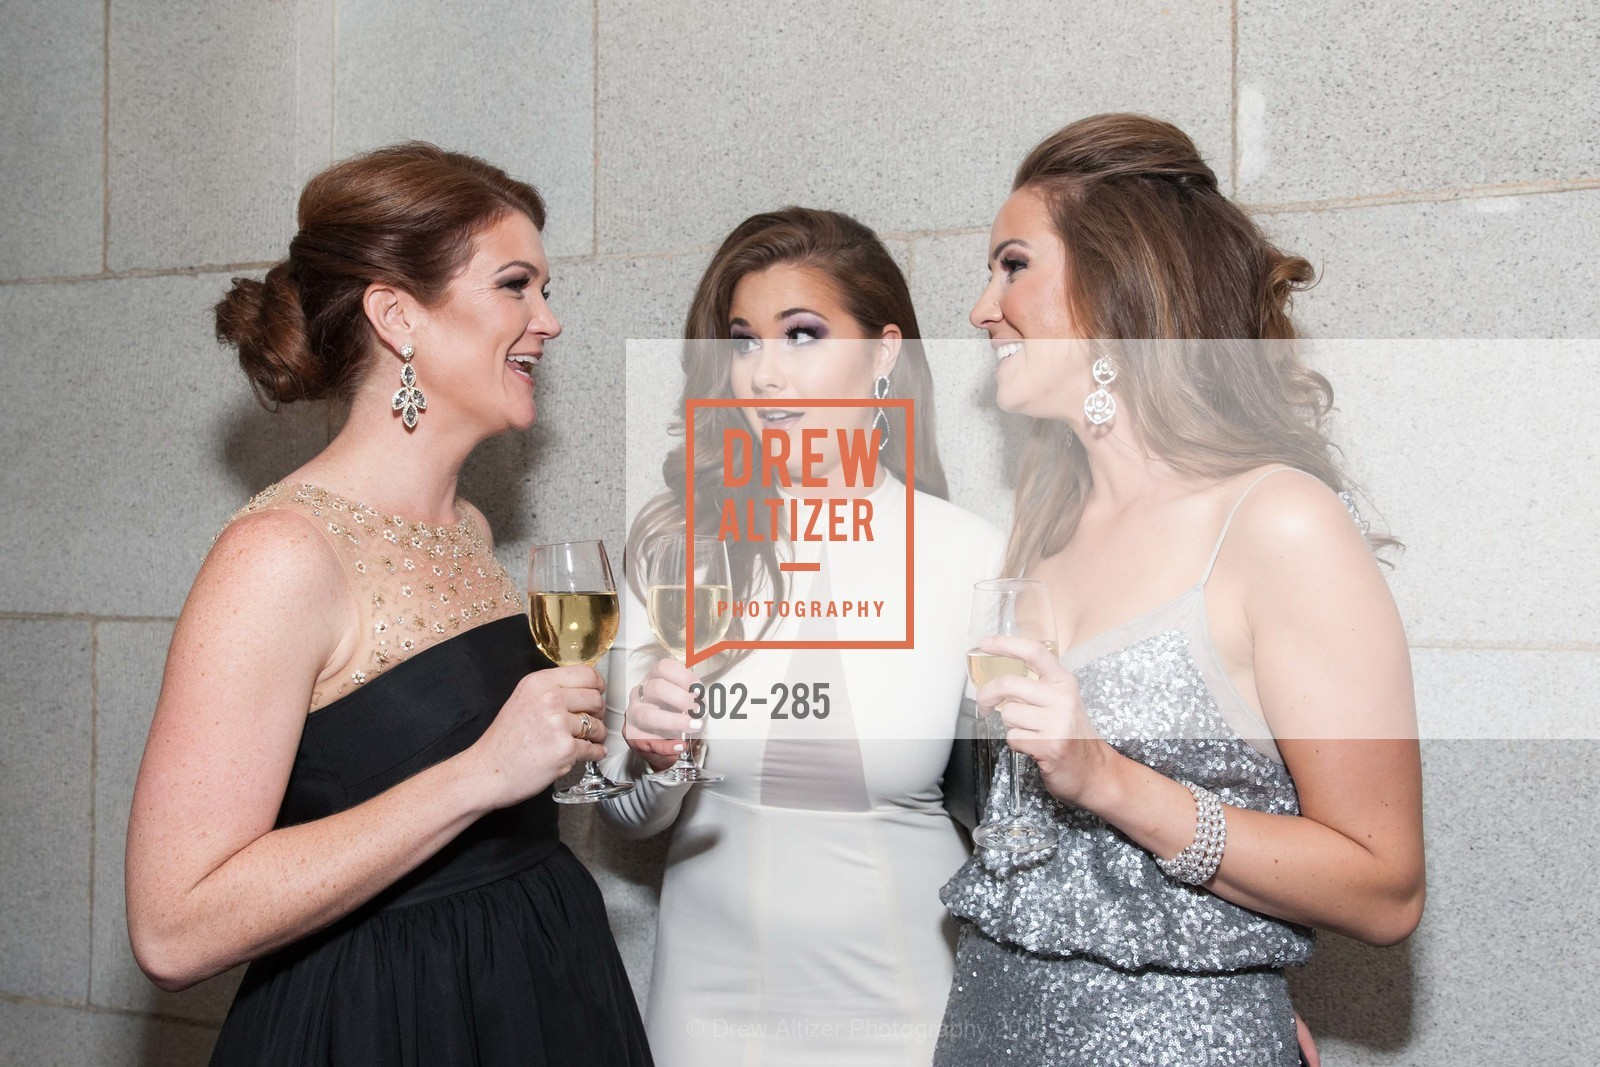 Emily Brown, Bailey Haw, Megan Graf, San Francisco Opera's BRAVO! CLUB Opening Night Gala, War Memorial Opera House. 301 Van Ness Ave, September 11th, 2015,Drew Altizer, Drew Altizer Photography, full-service agency, private events, San Francisco photographer, photographer california